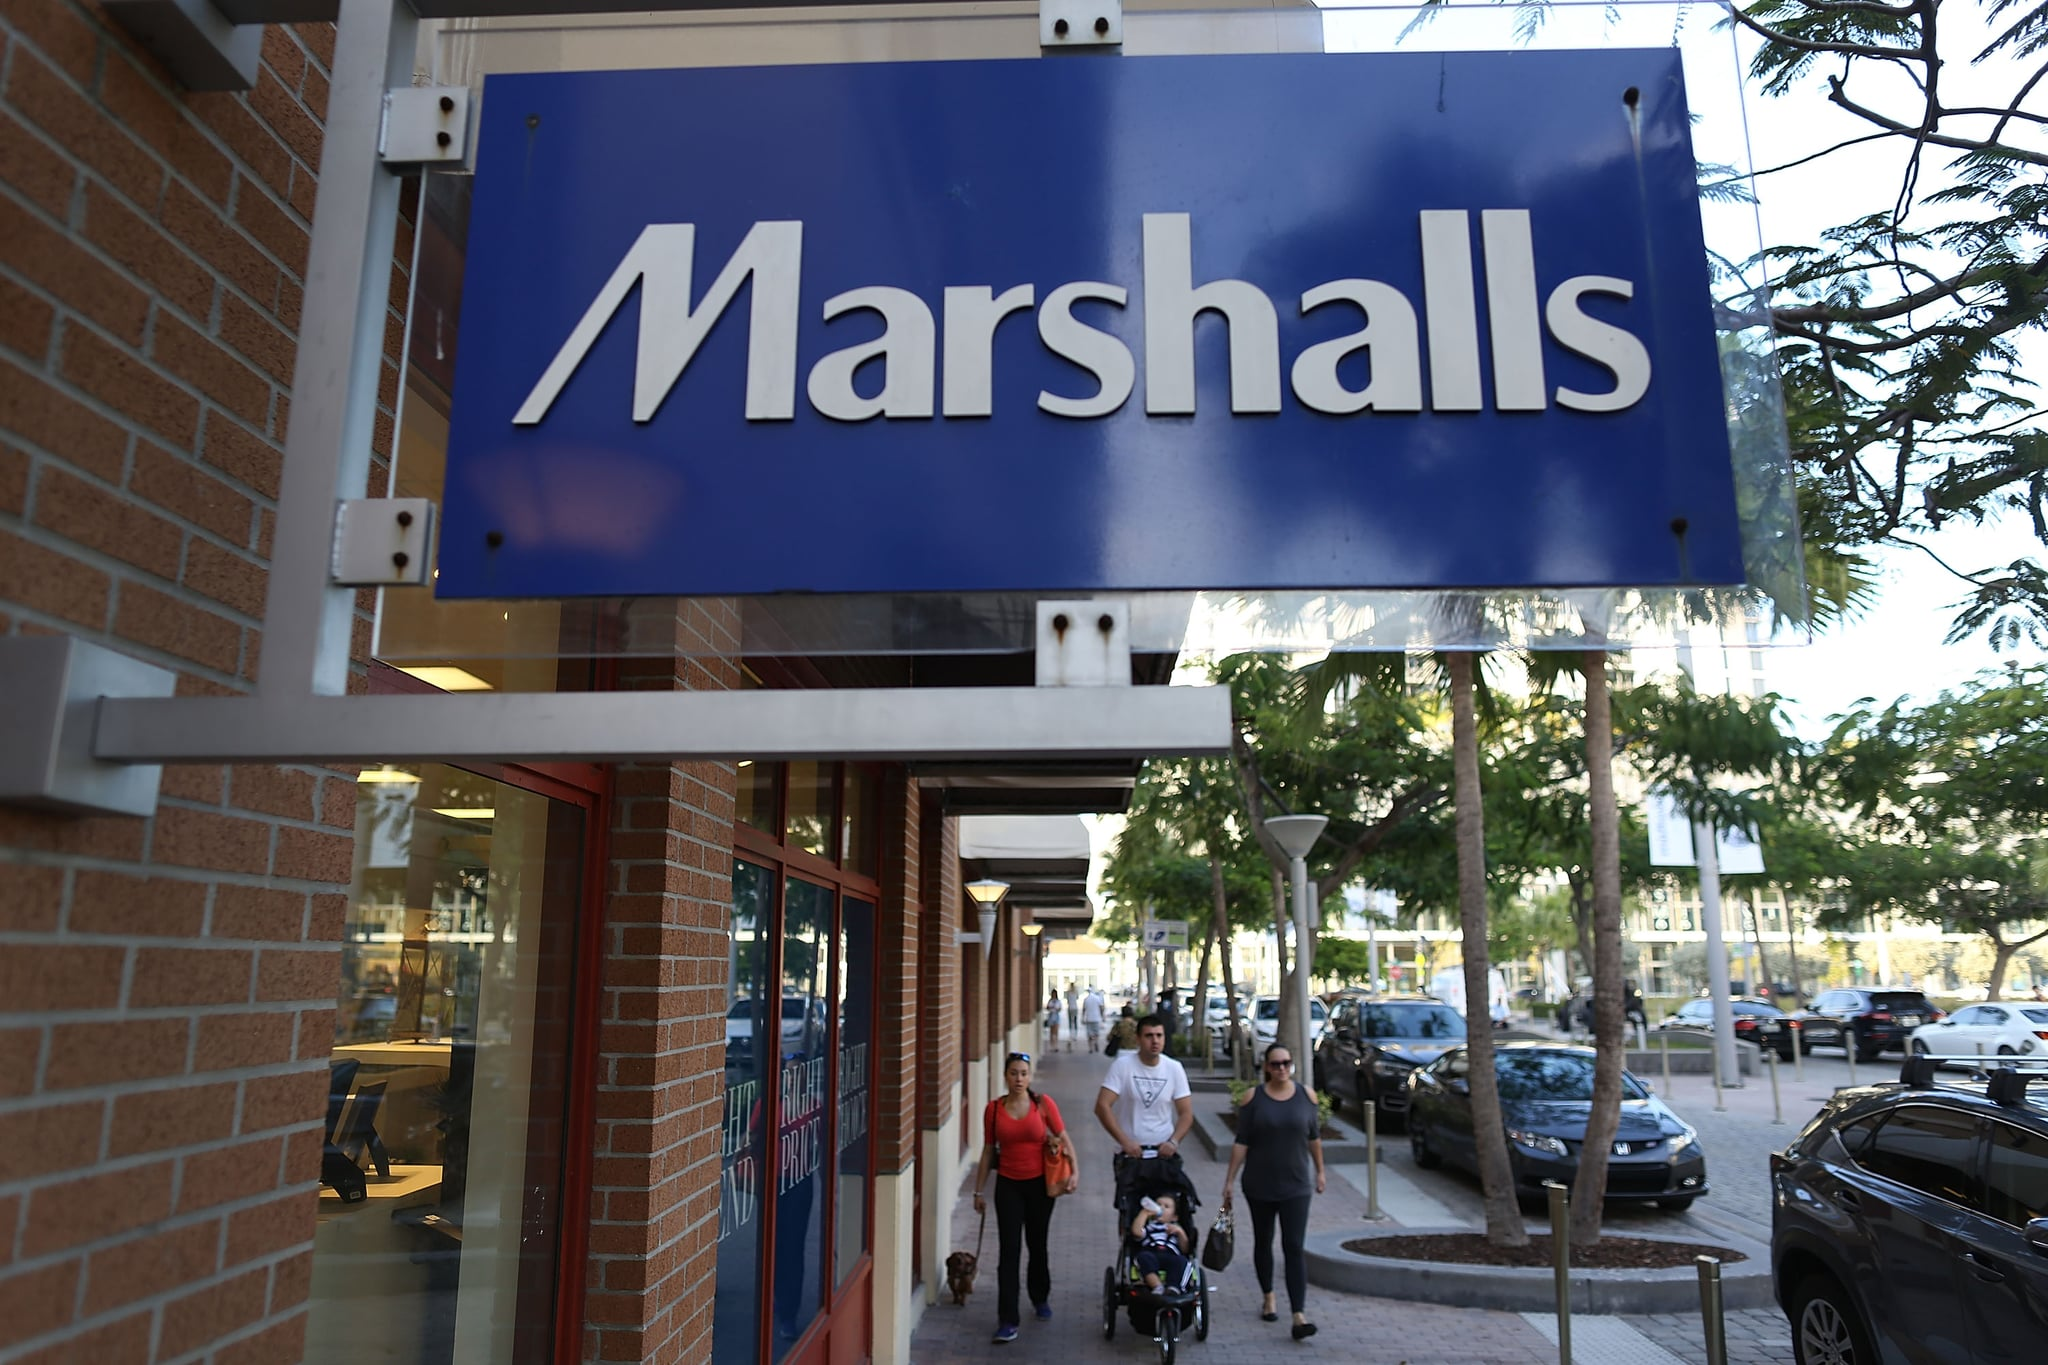 MIAMI, FL - FEBRUARY 08:  A Marshalls store is seen on February 8, 2017 in Miami, Florida.  Marshalls and T.J. Maxx stores have reportedly been told by the retailers' parent company, The TJX Campanies, that they should not feature Ivanka Trump's merchandise and to discard signs advertising those products.  (Photo by Joe Raedle/Getty Images)